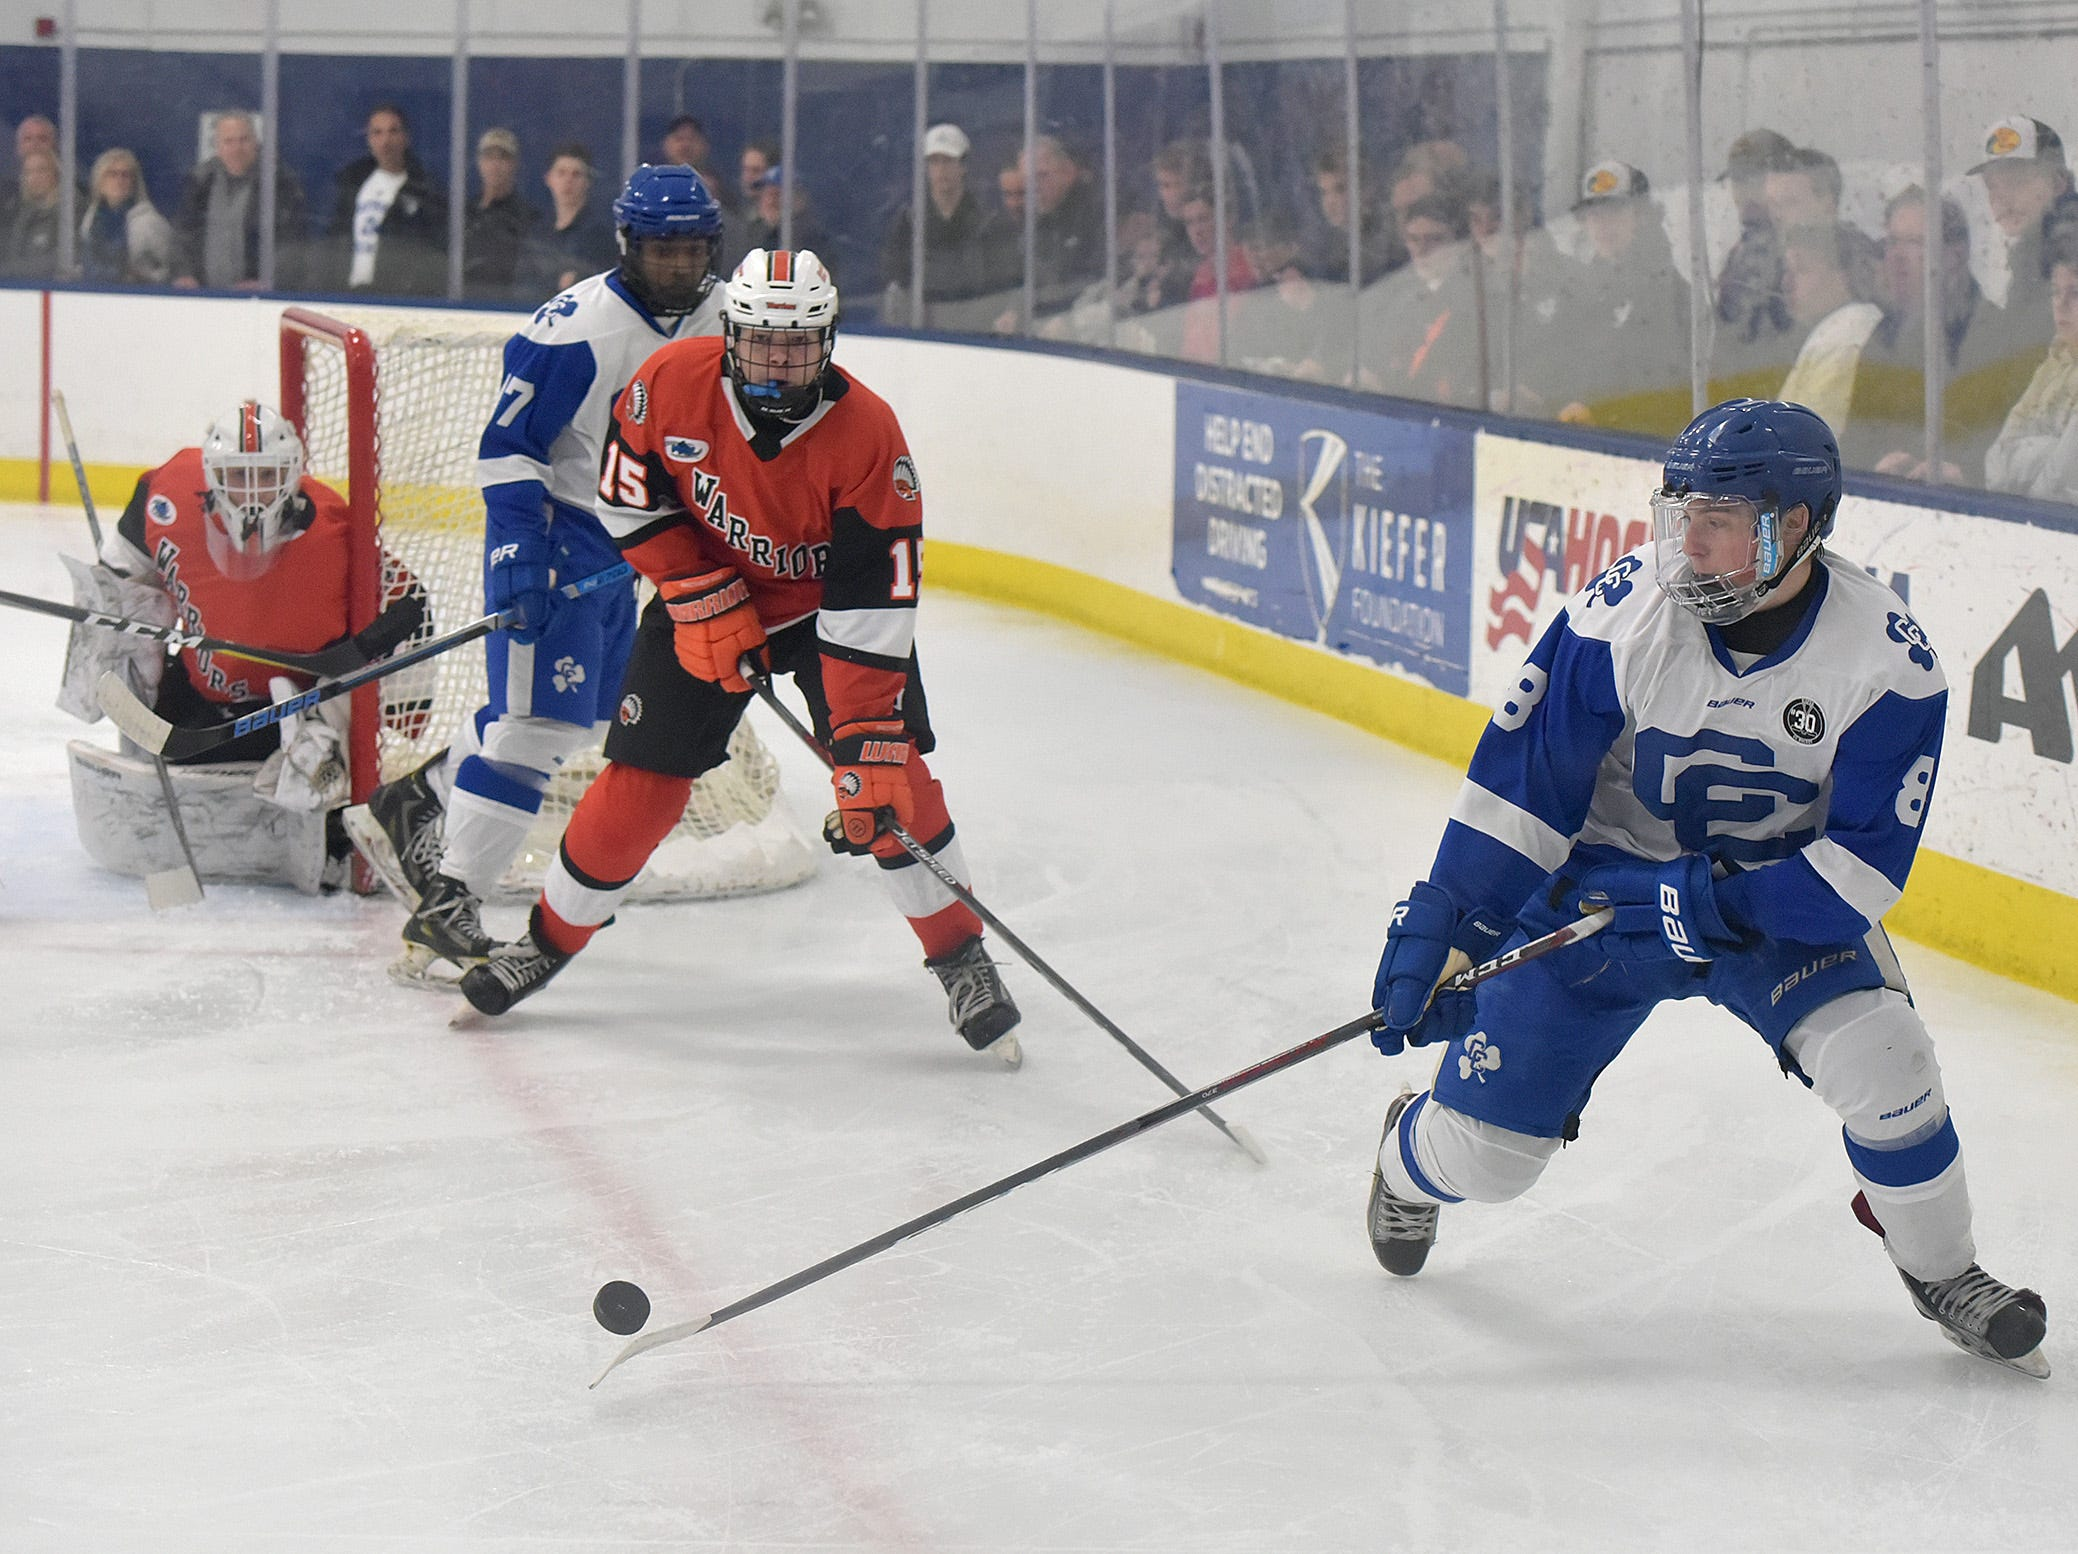 CC's Joe Bothwick moves the puck from behind the Rice goal. Brother Rice defenseman Nick Dippre (15) and CC forward Rylan Clemons (17) follow the puck.